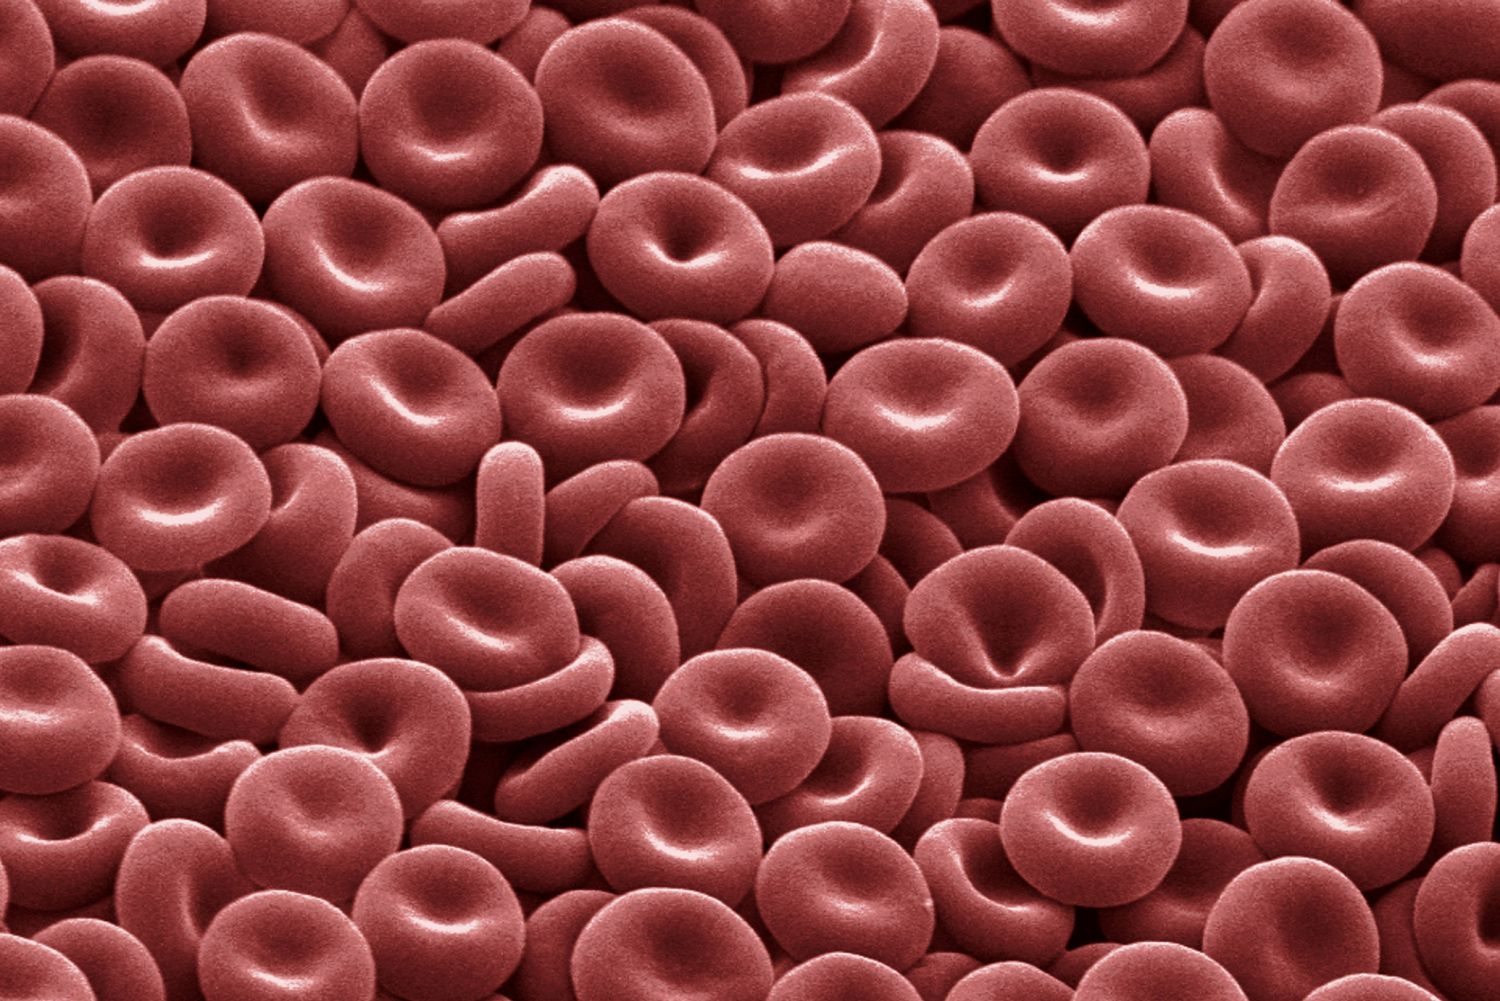 Red Blood Cells: Function and Structure